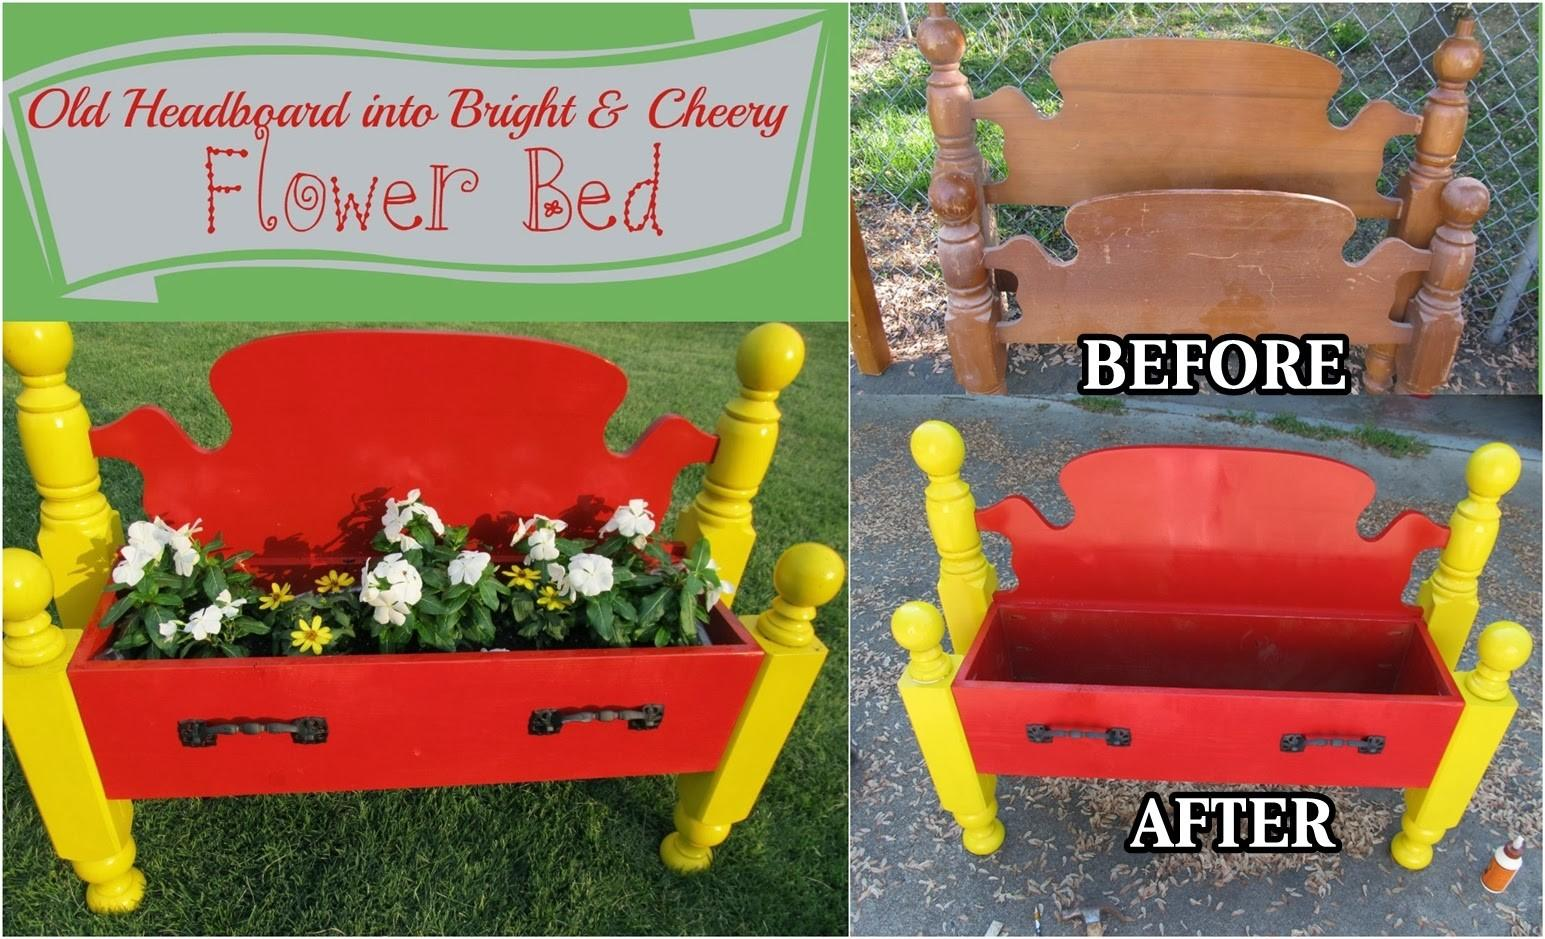 Diy Repurposed Headboard Into Flower Bed Craft